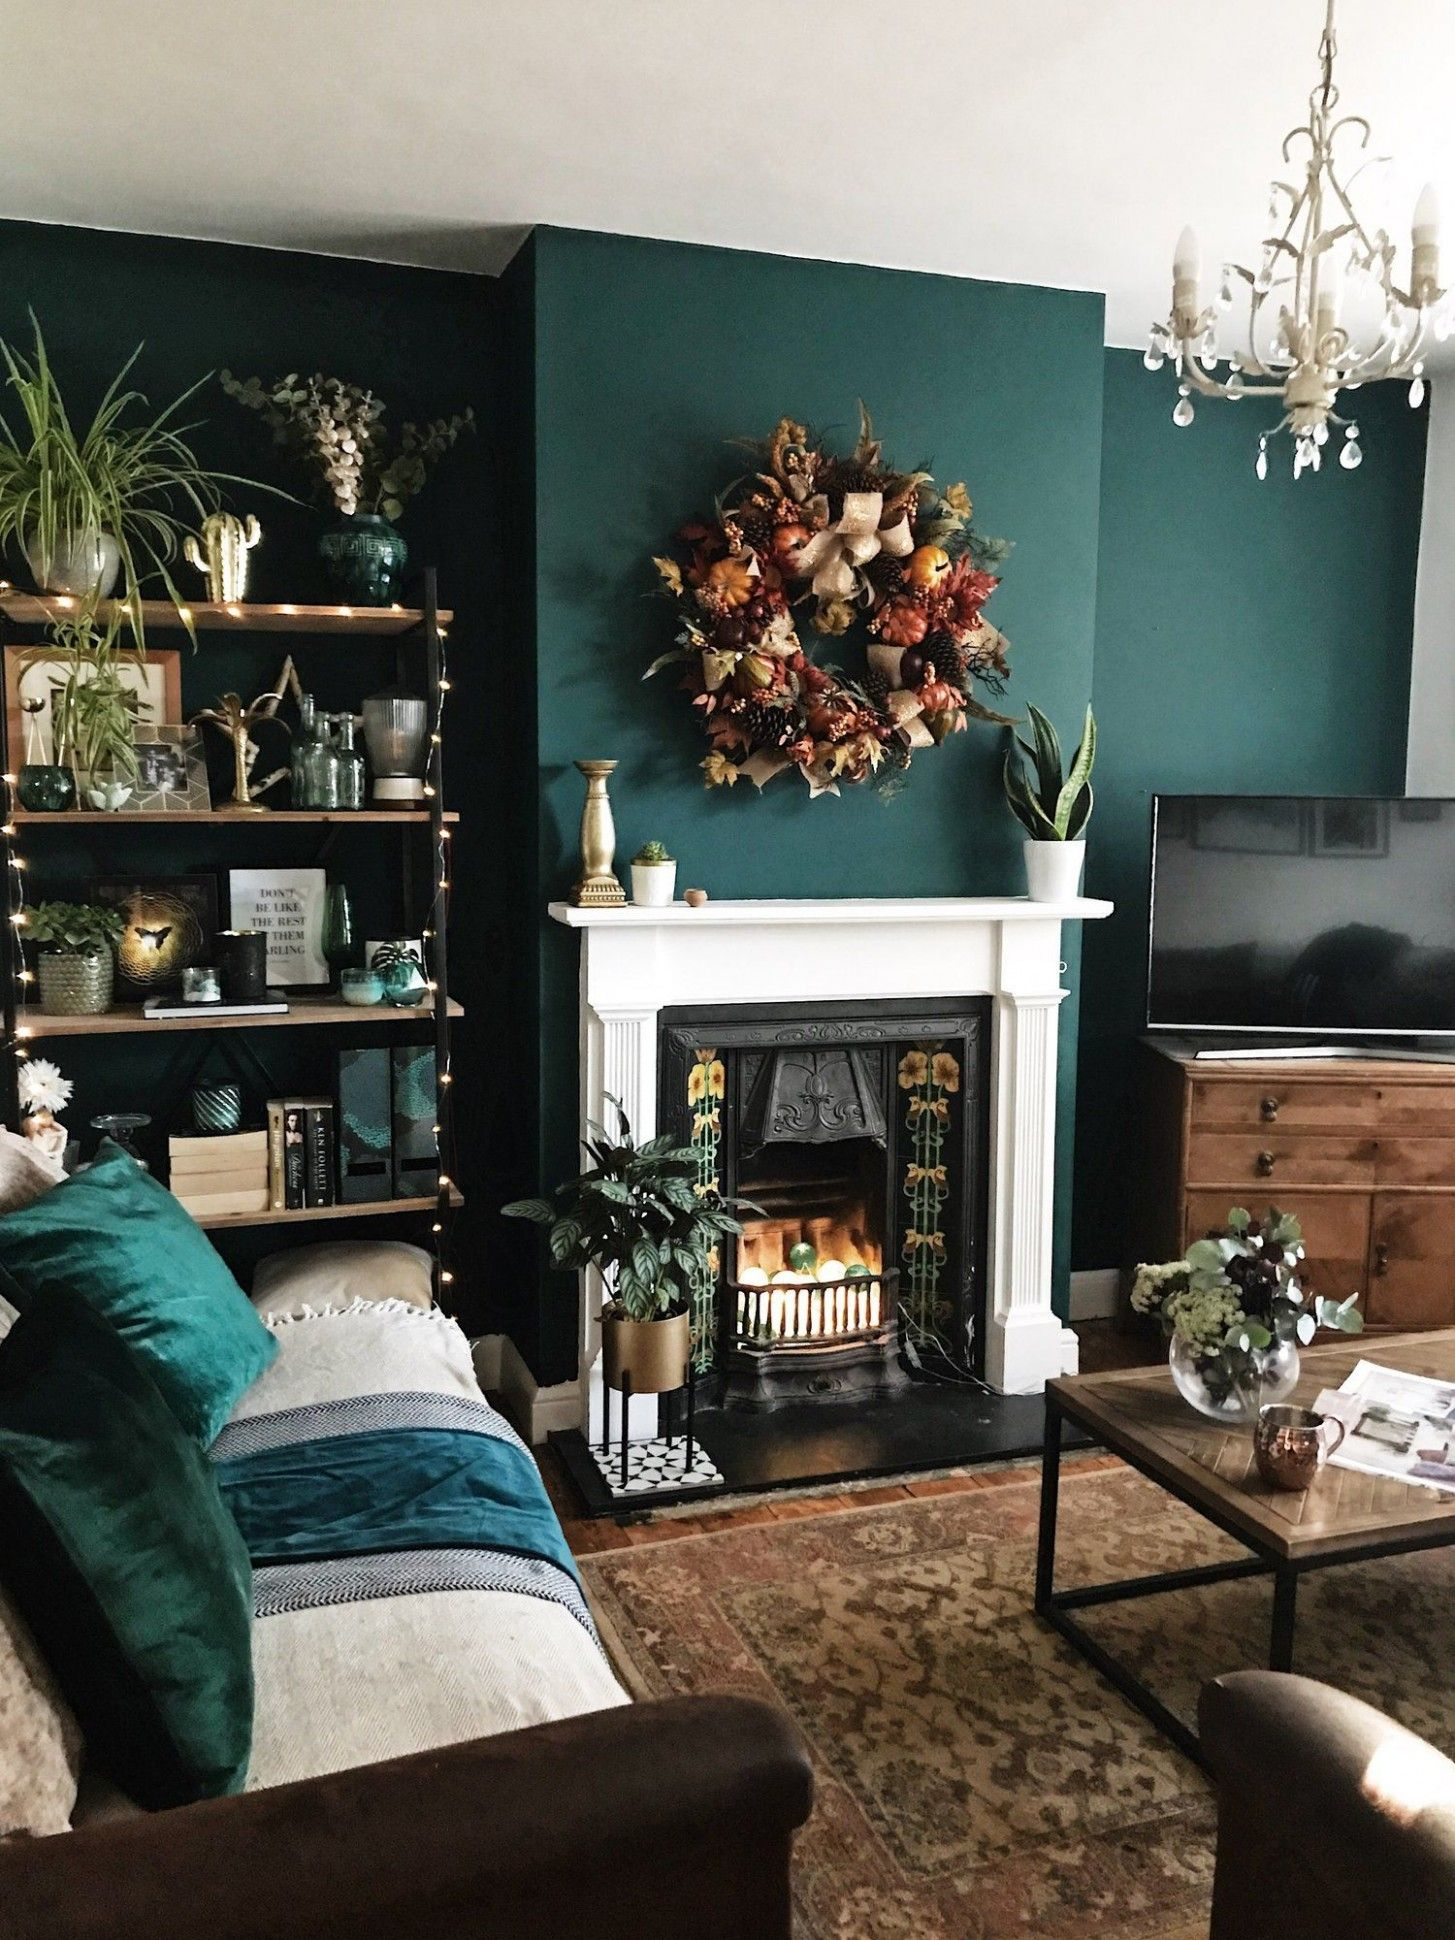 Dark Green Living Room Accent Wall Here S A Living Room With A Dark Blue Green Behind A Charcoal Sofa If You Like This Roo Living Room Color Schemes Accent Walls